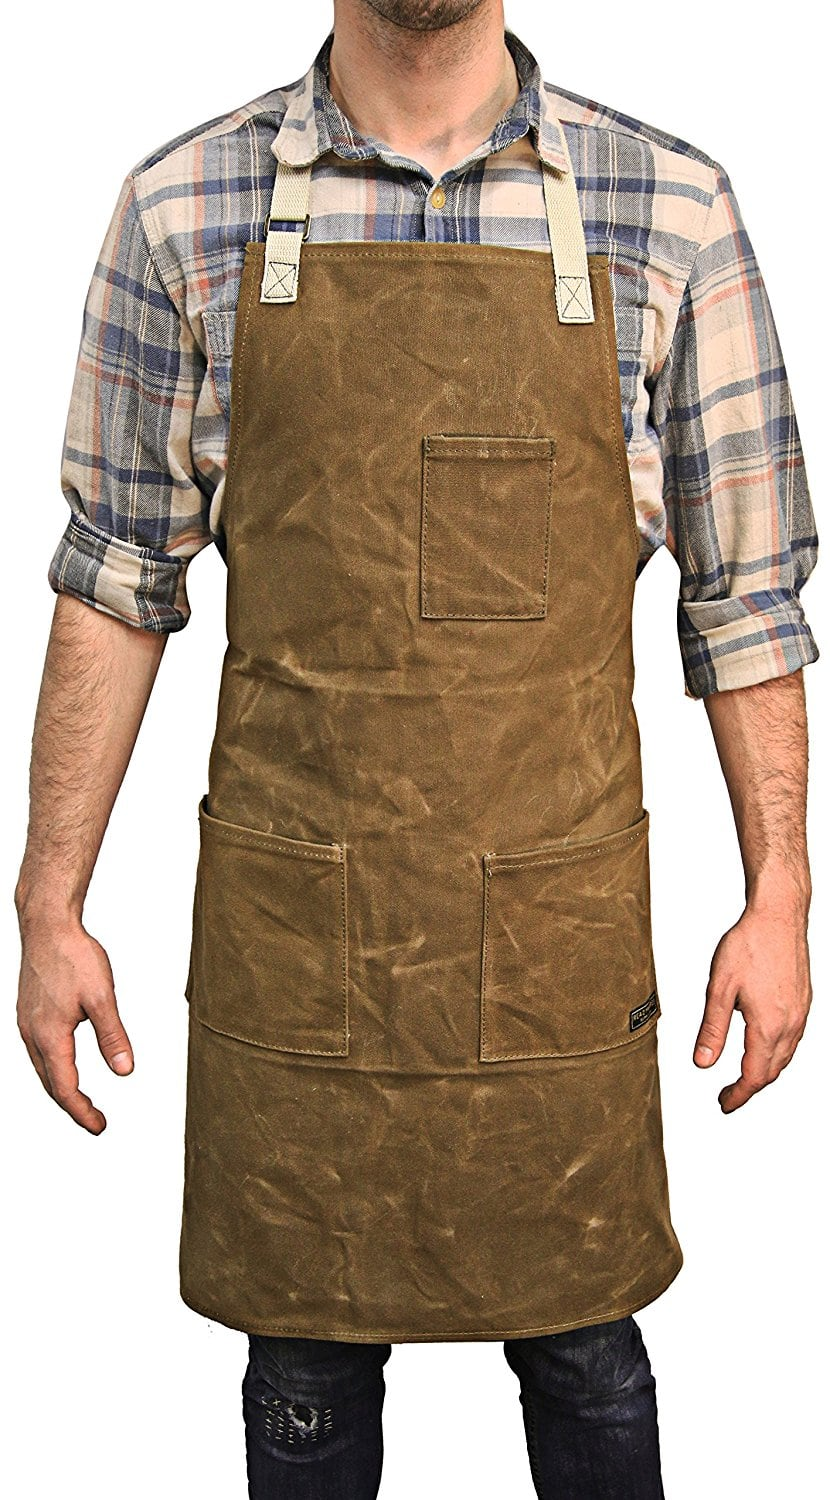 BOGO - Readywares Waxed Canvas Utility Aprons - 2 for $37 shipped.